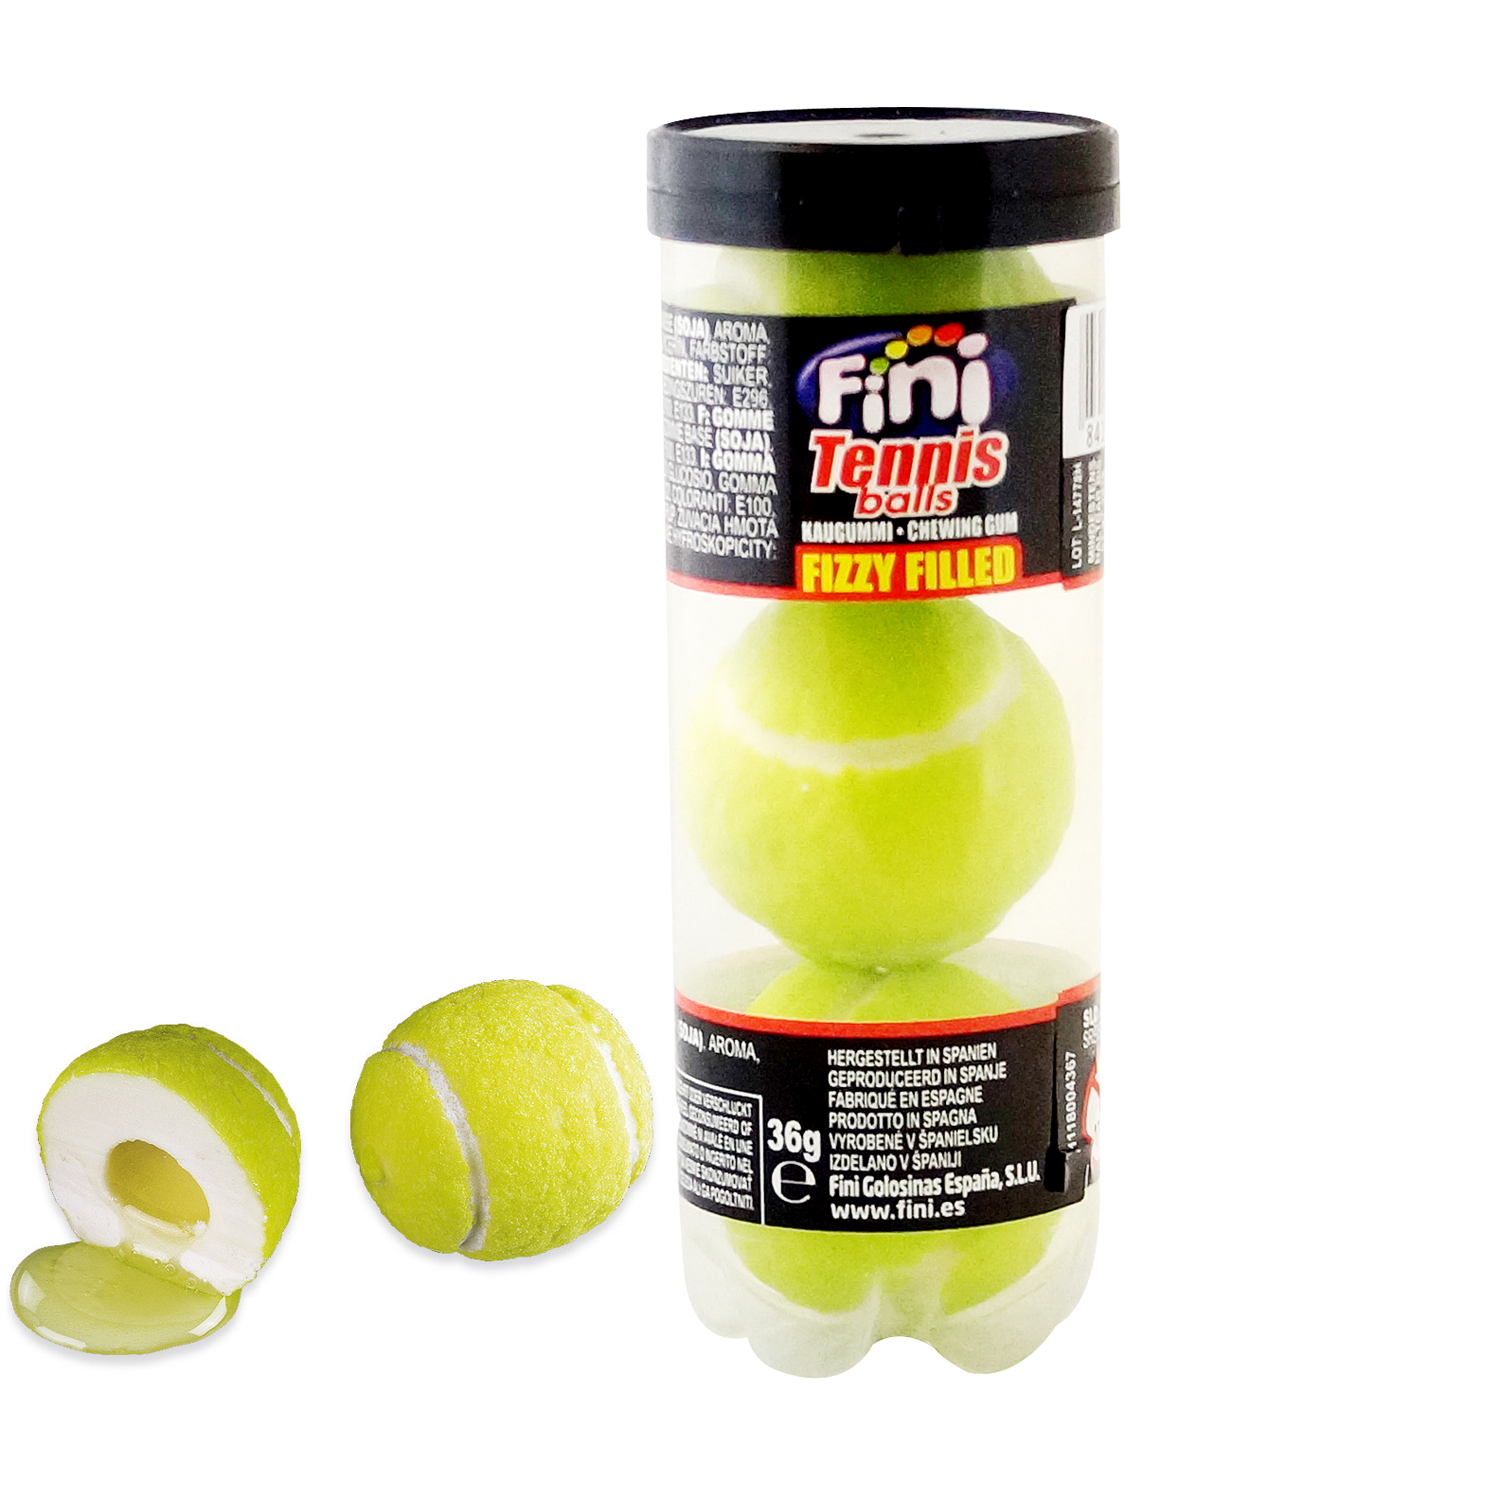 fini tennis balls 3er online kaufen im world of sweets shop. Black Bedroom Furniture Sets. Home Design Ideas